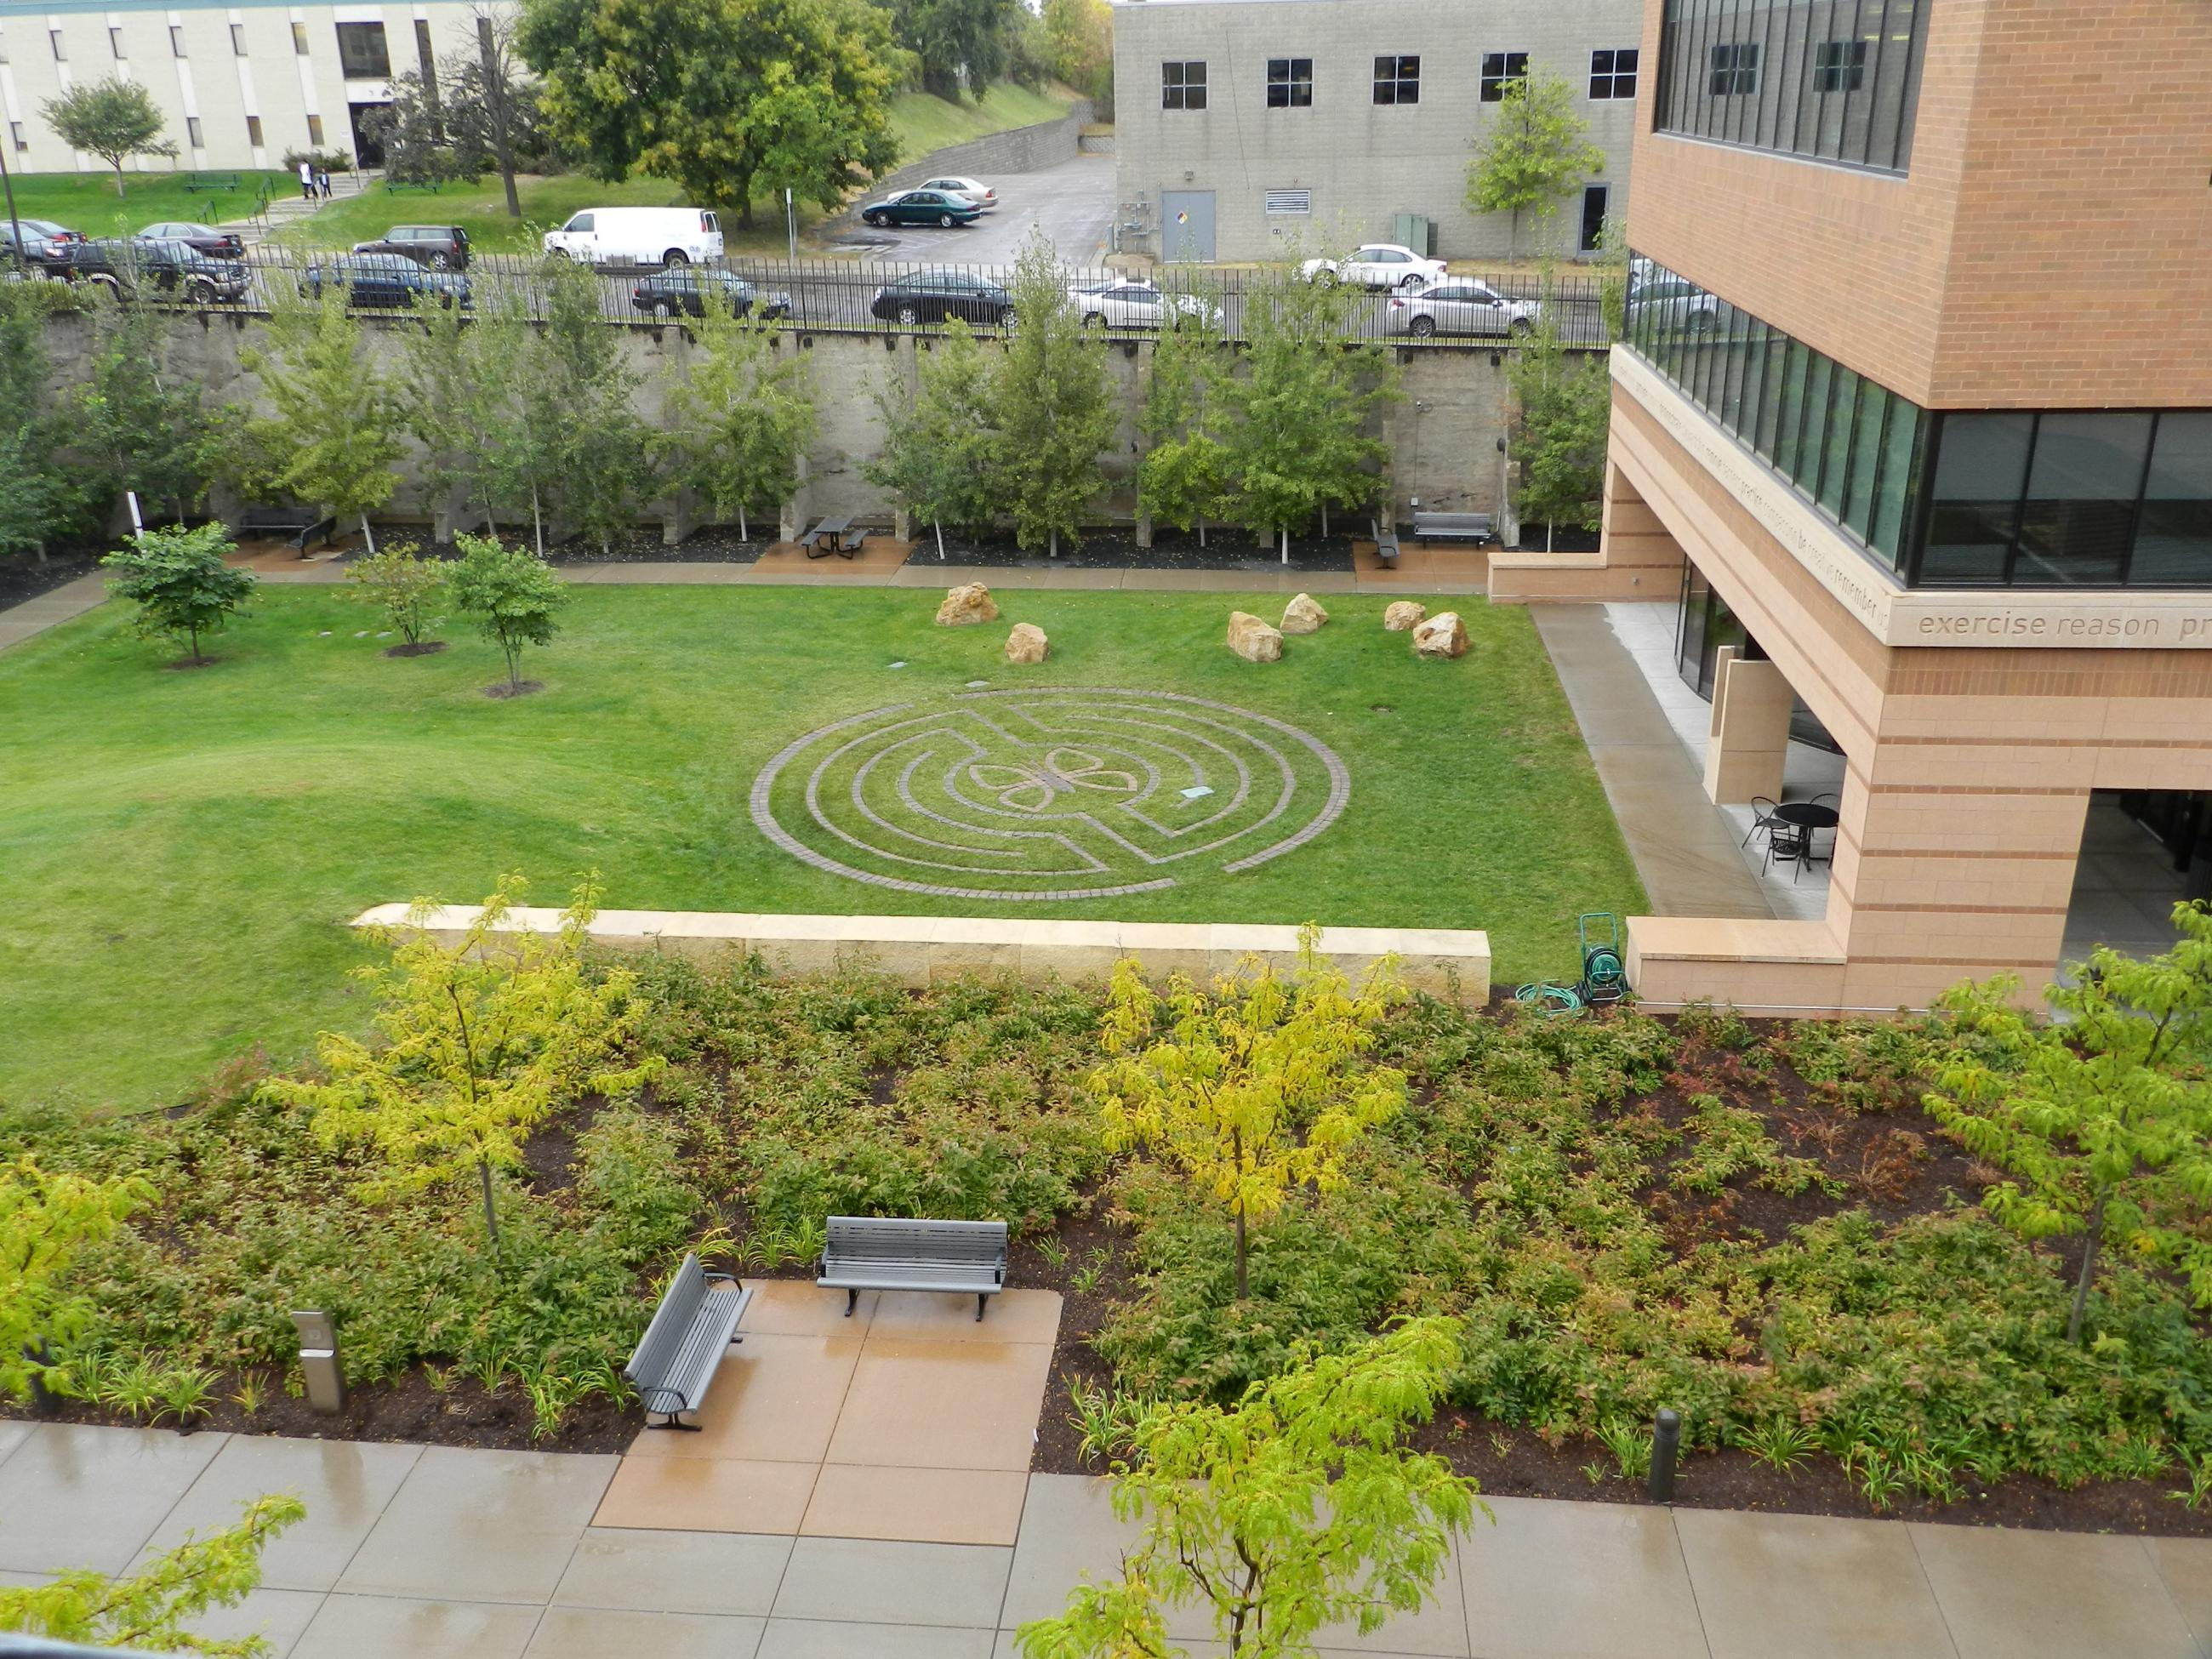 Wilder Center Backyard Labyrinth